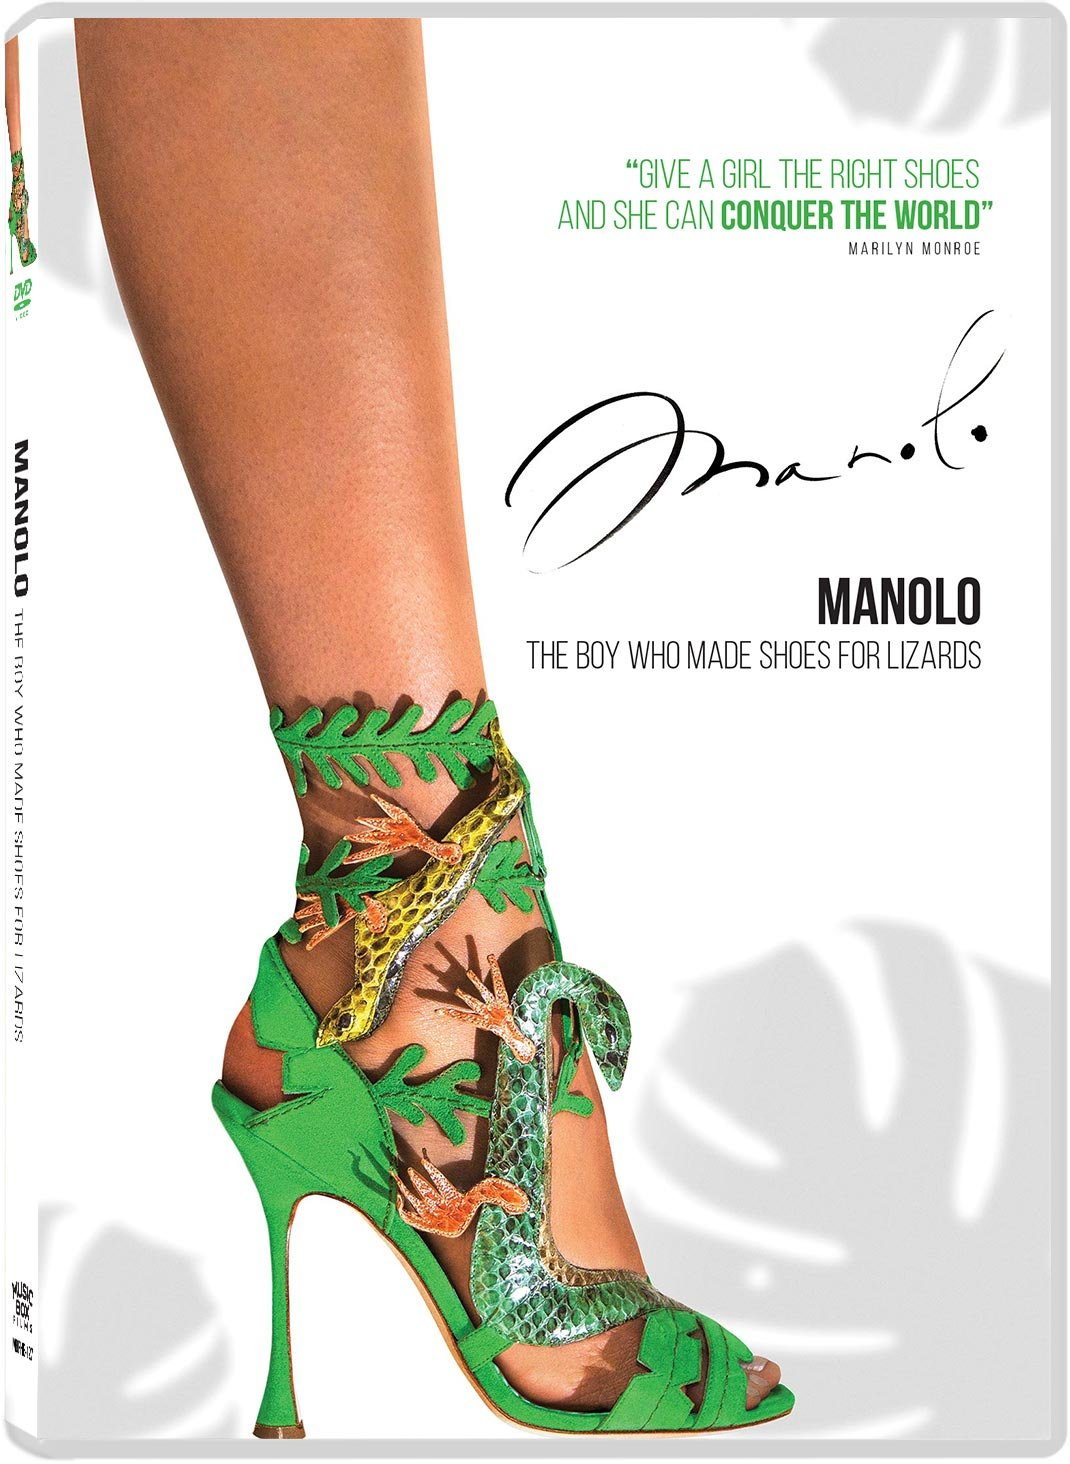 Amazon Com Manolo The Boy Who Made Shoes For Lizards Manolo Blahnik Rihanna Anna Wintour Andre Leon Talley Naomi Campbell Michael Roberts Movies Tv